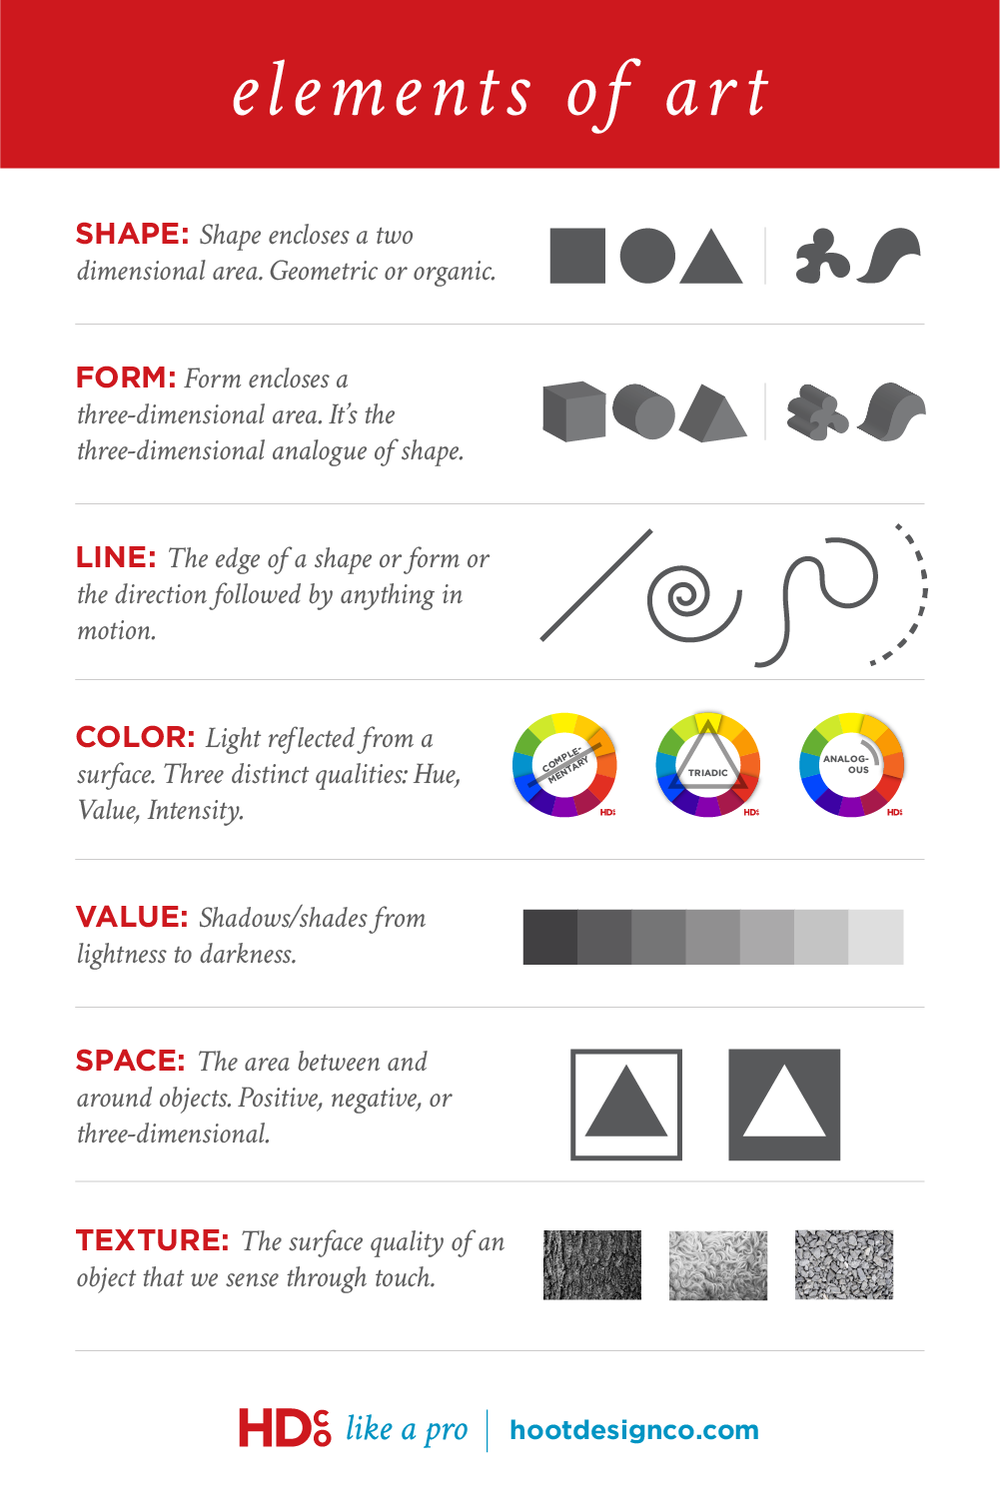 5 Elements Of Art : The elements of art hoot design co web